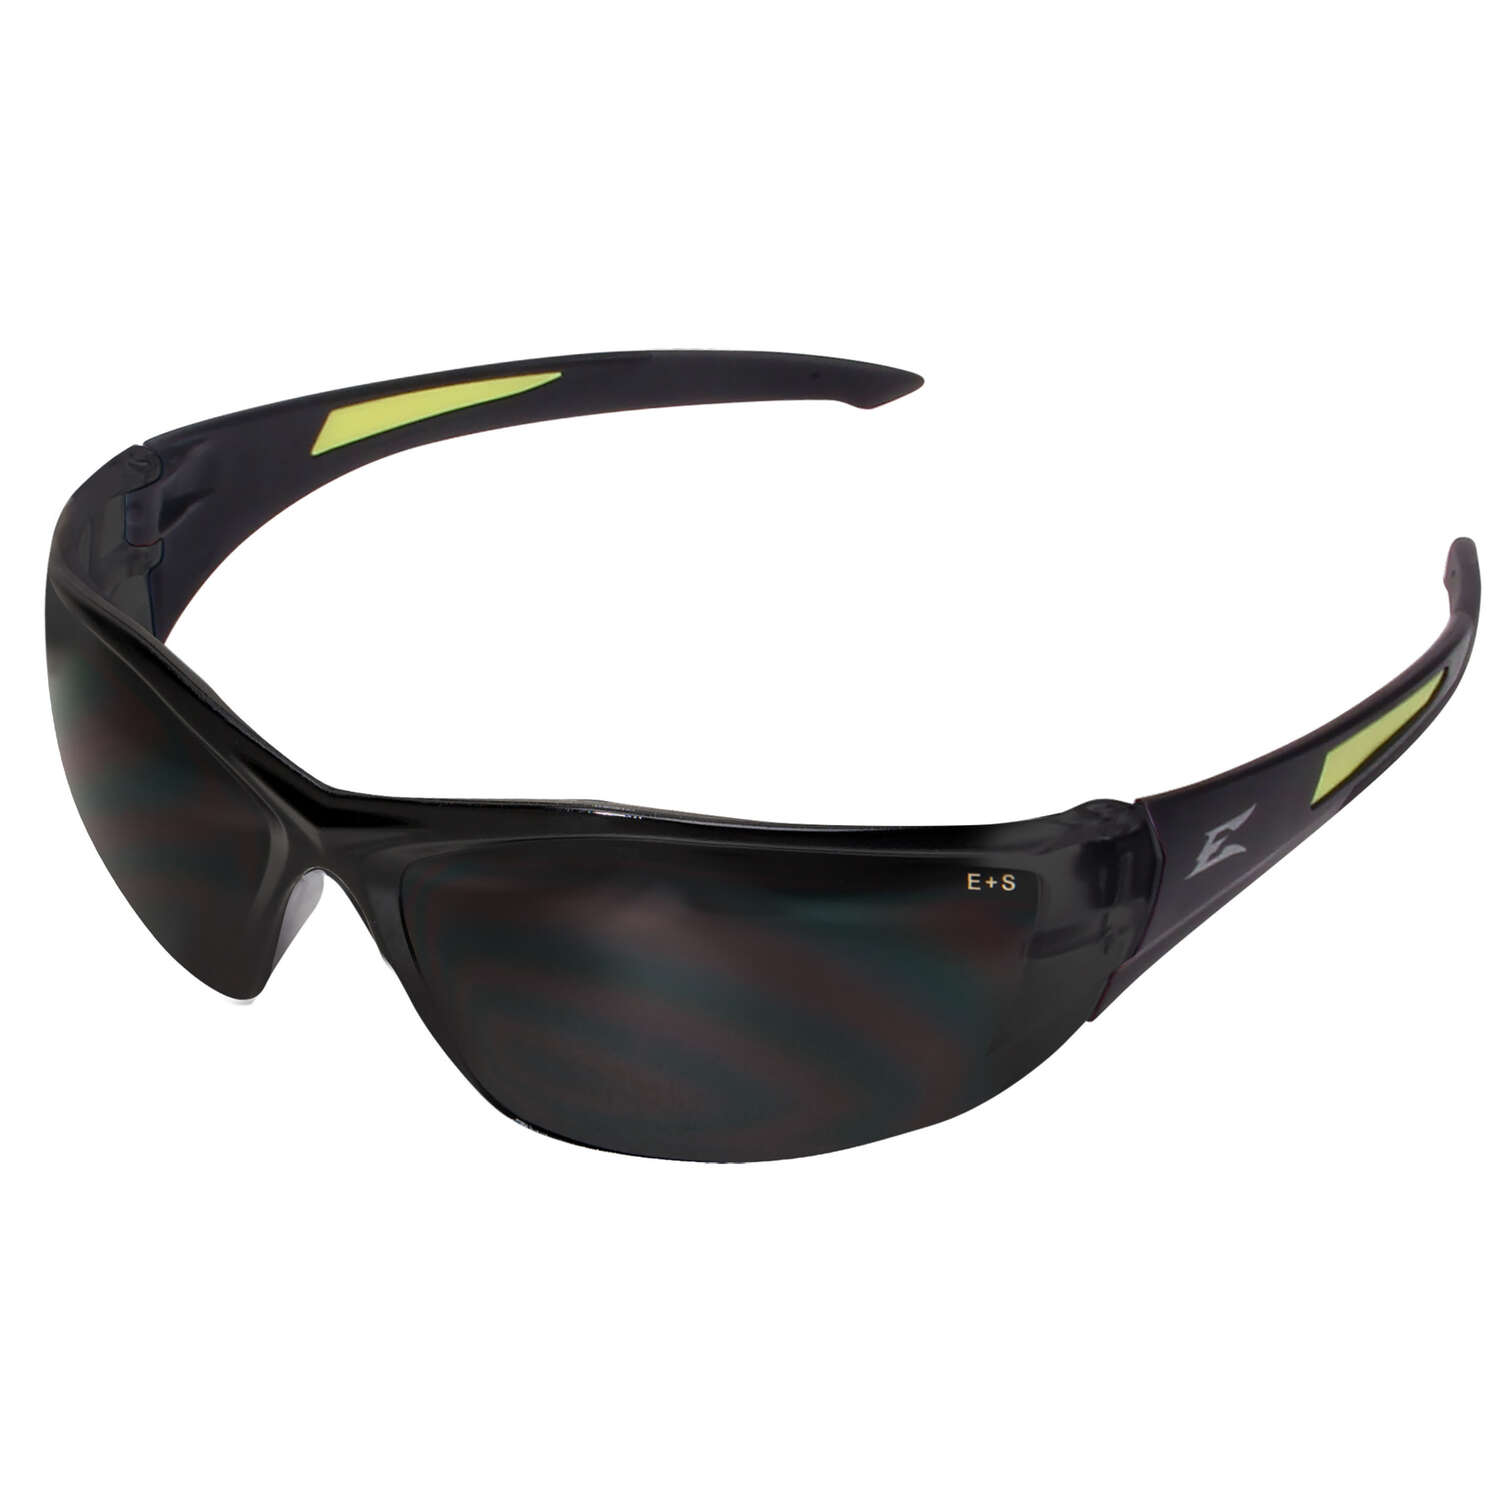 Edge Eyewear  Safety Glasses  Smoke Lens Black Frame 1 pc.